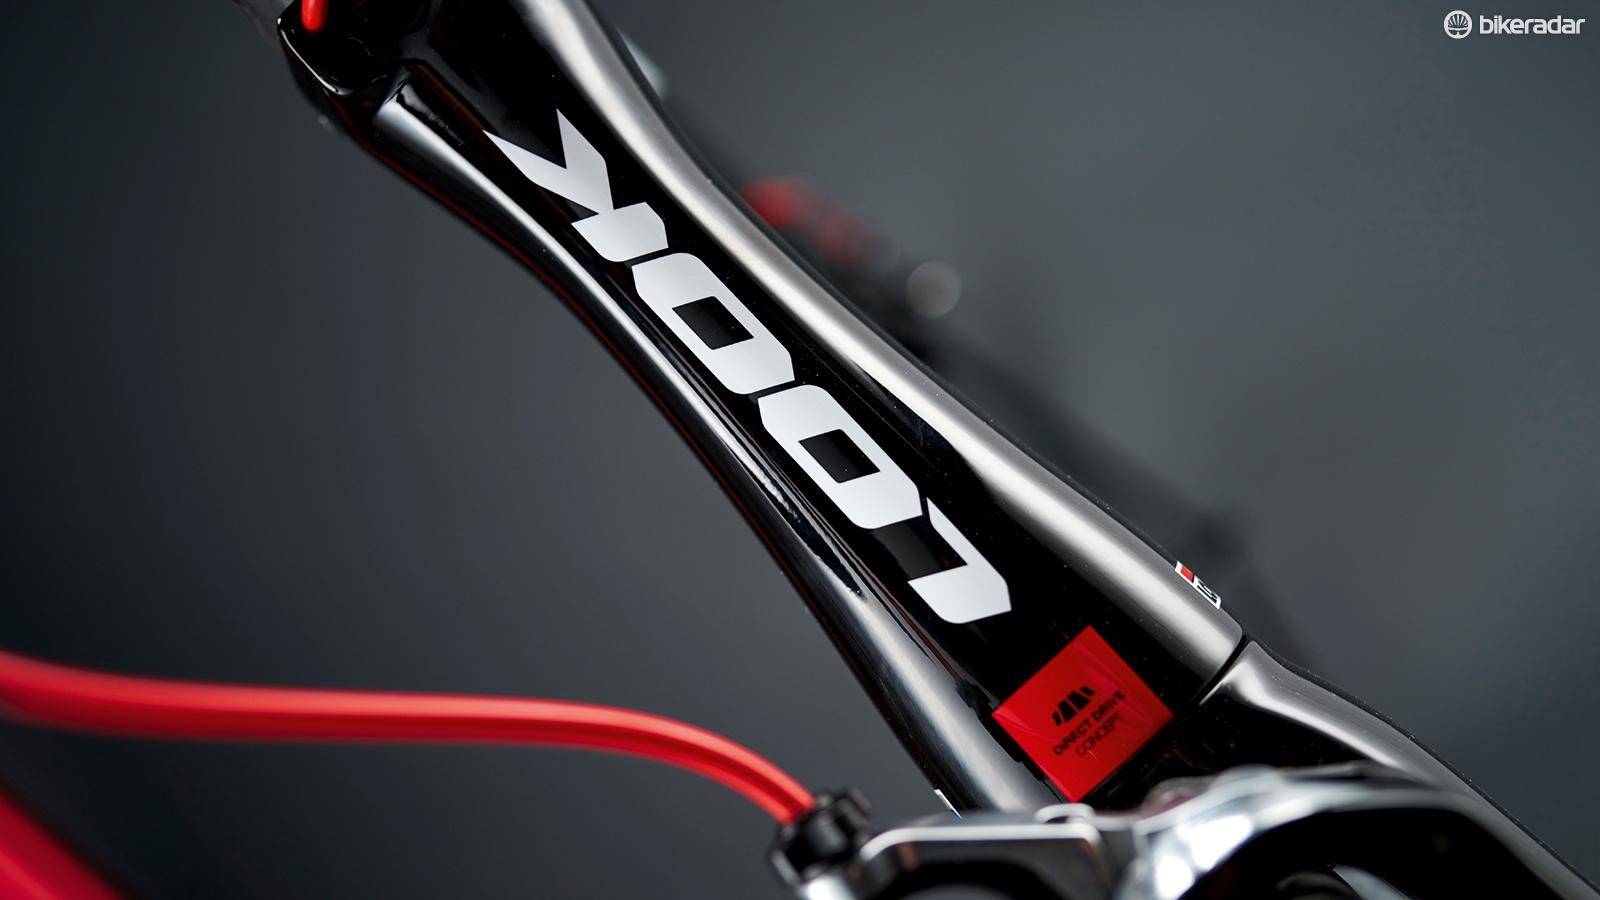 In pursuit of sleeker aerodynamics, the head tube is very slender to reduce the frontal area